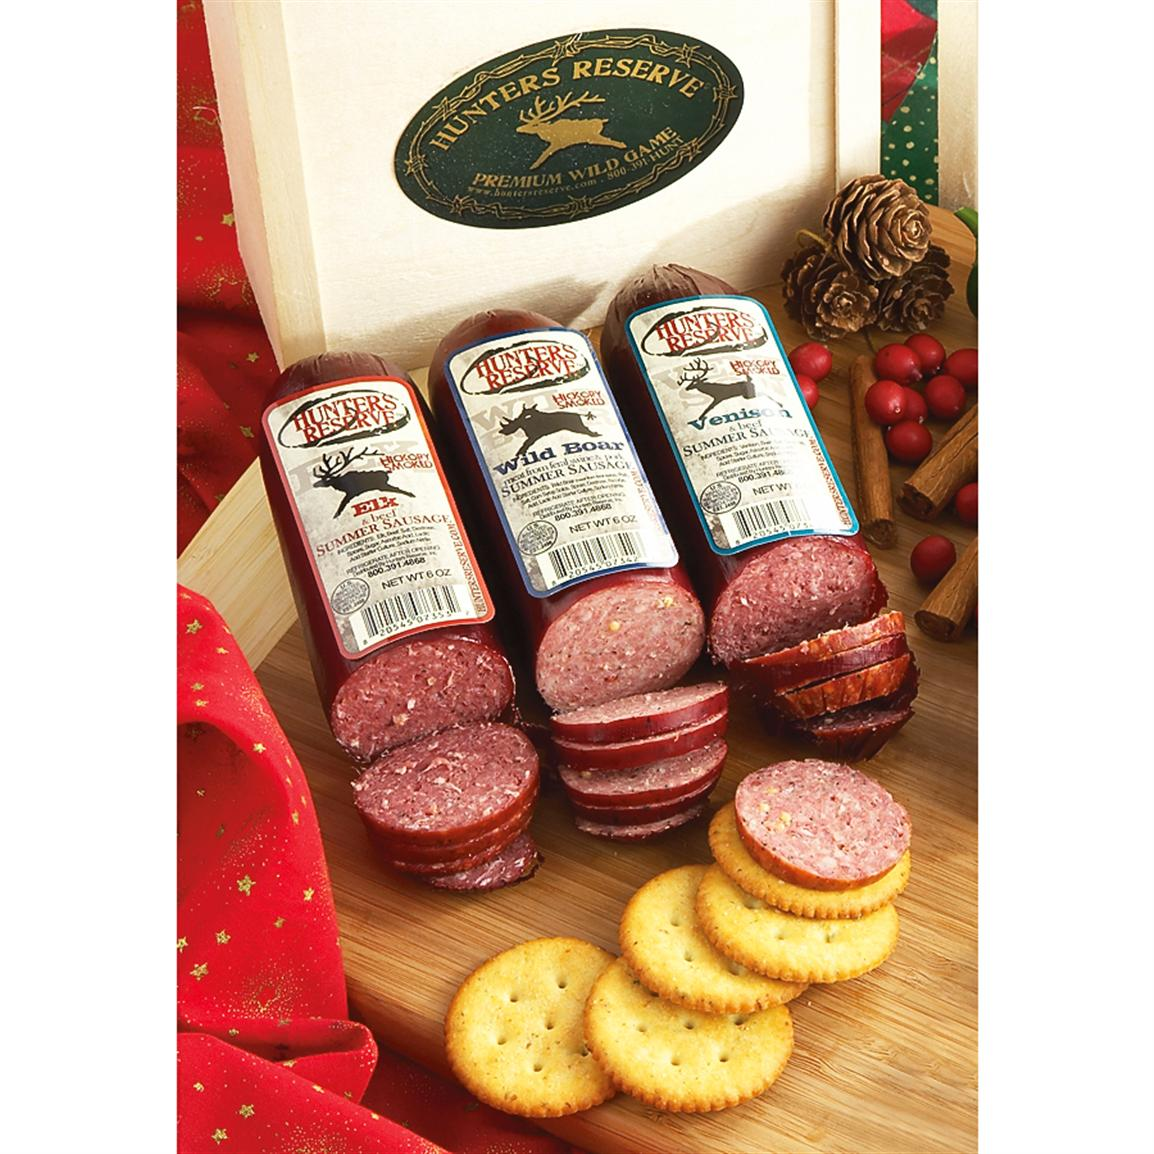 Hunters Reserve™ Wild Game Sausage Gift Box